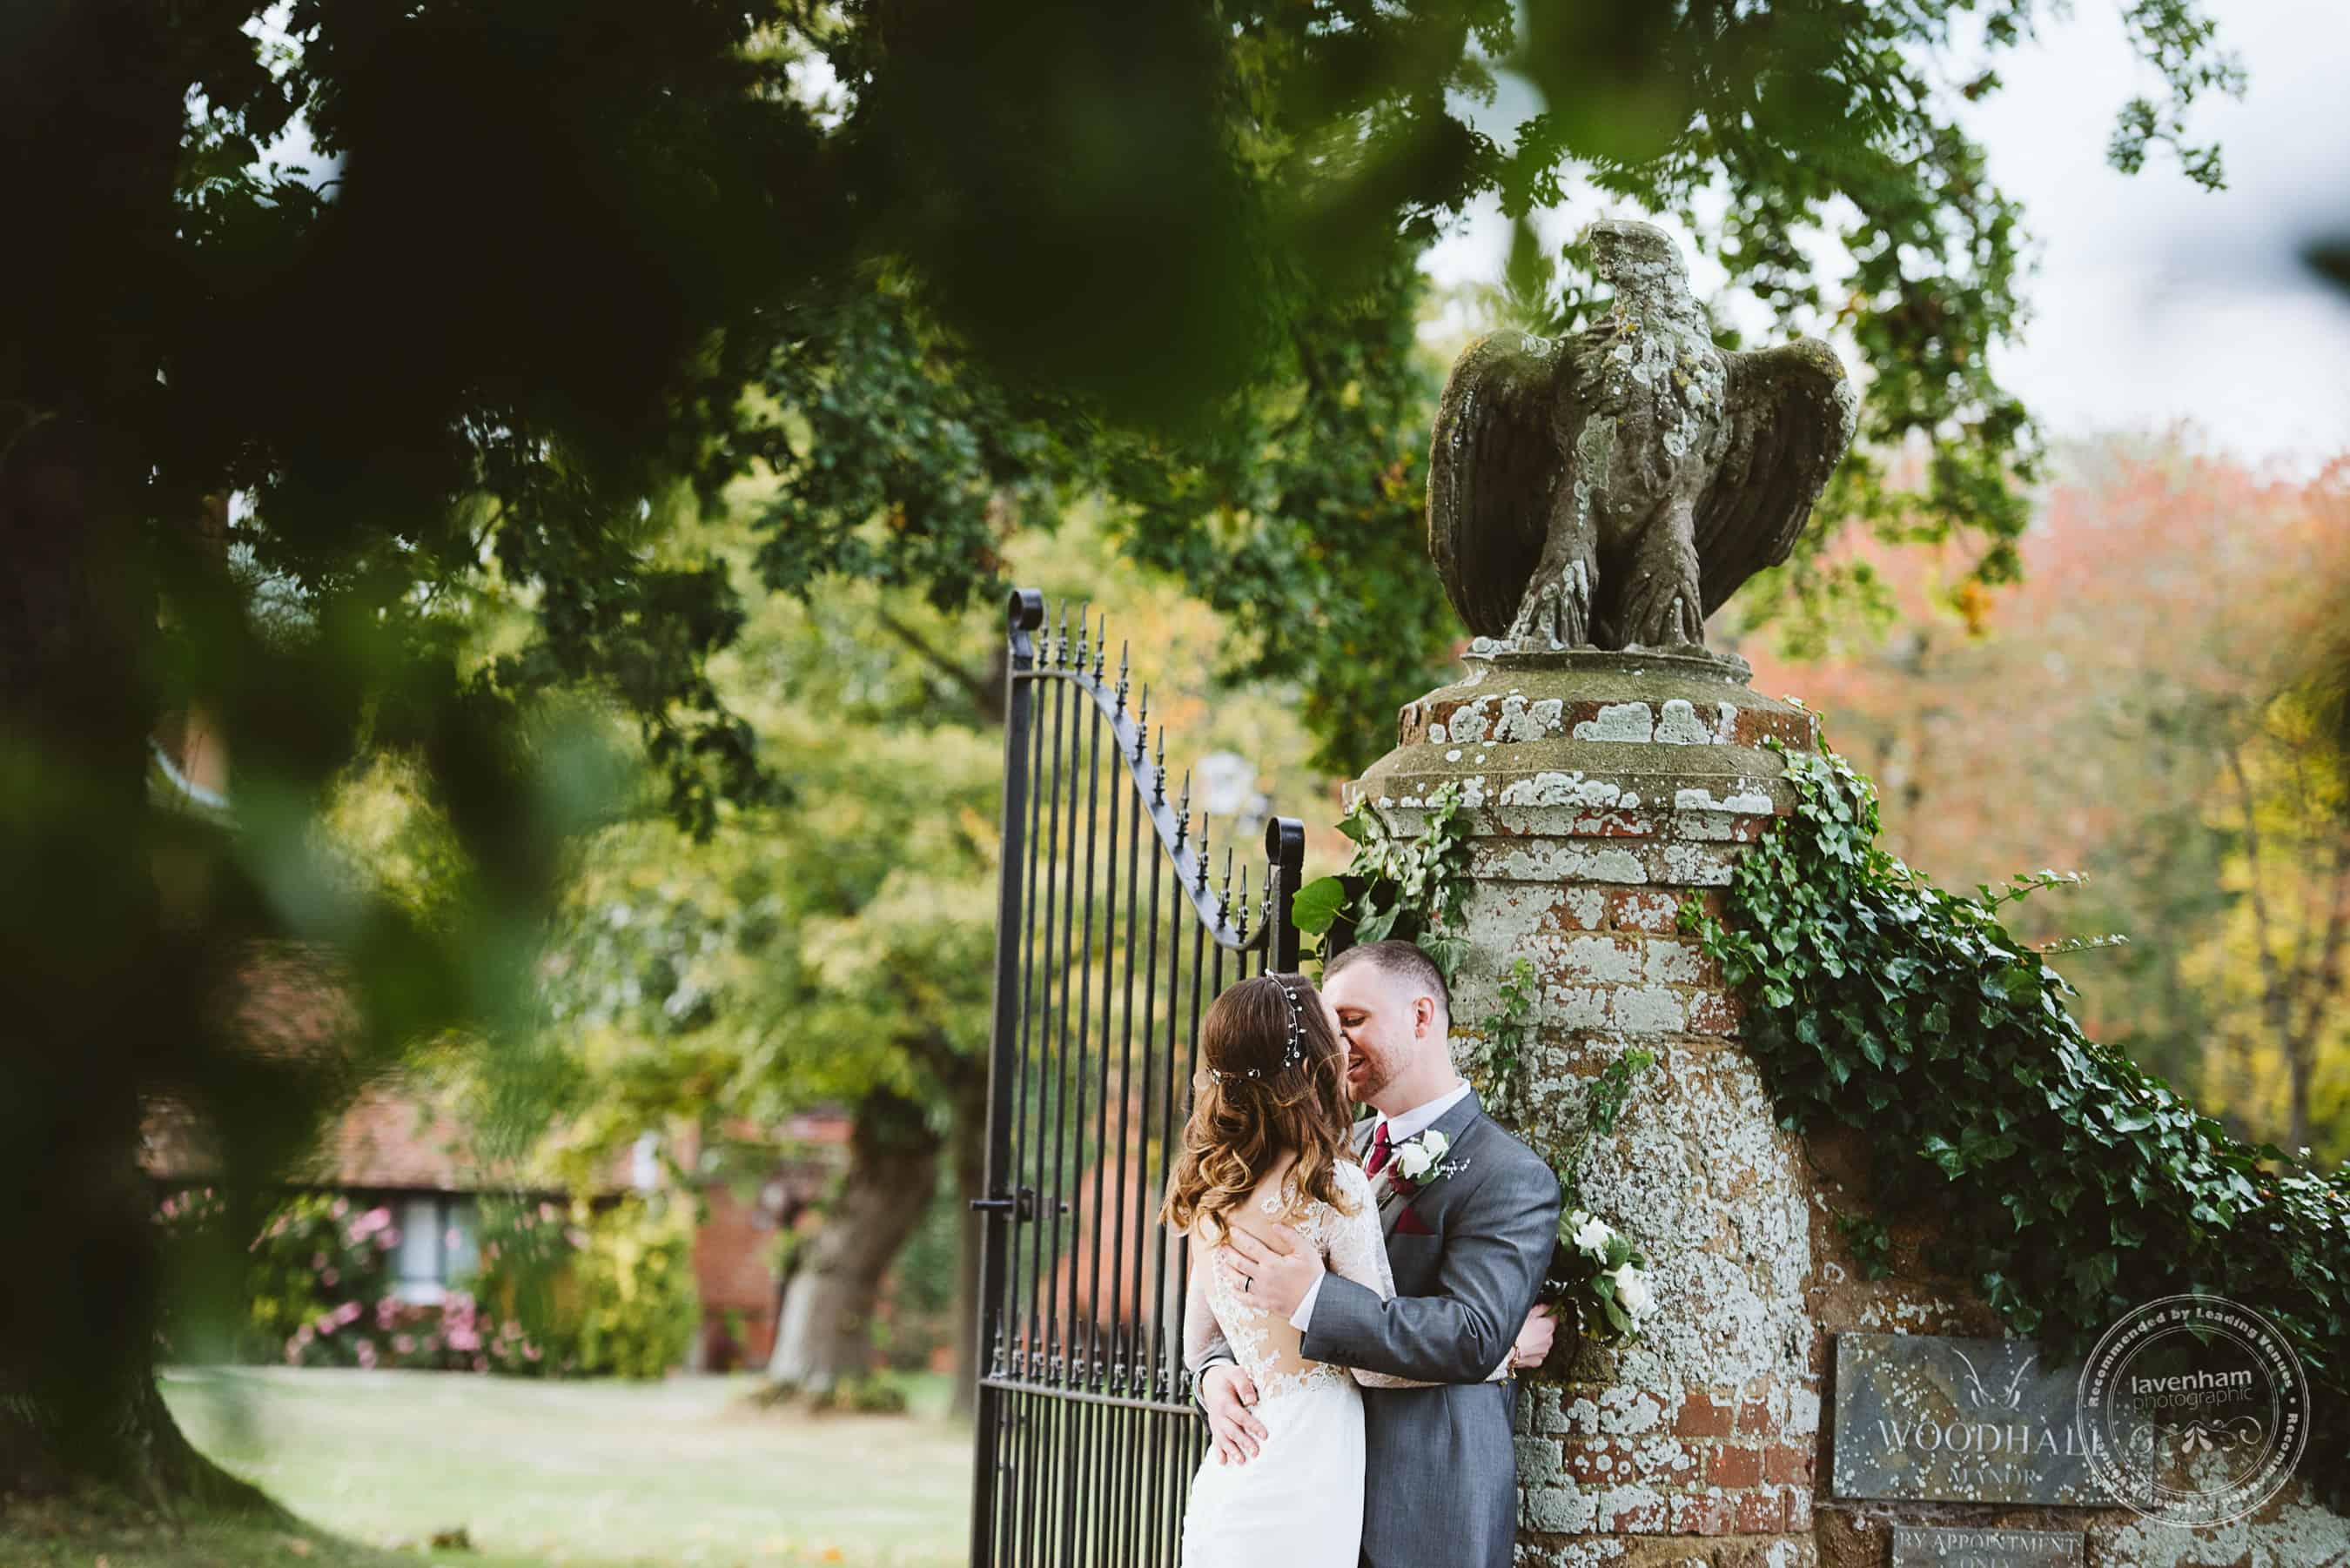 041118 Woodhall Manor Wedding Photography by Lavenham Photographic 094